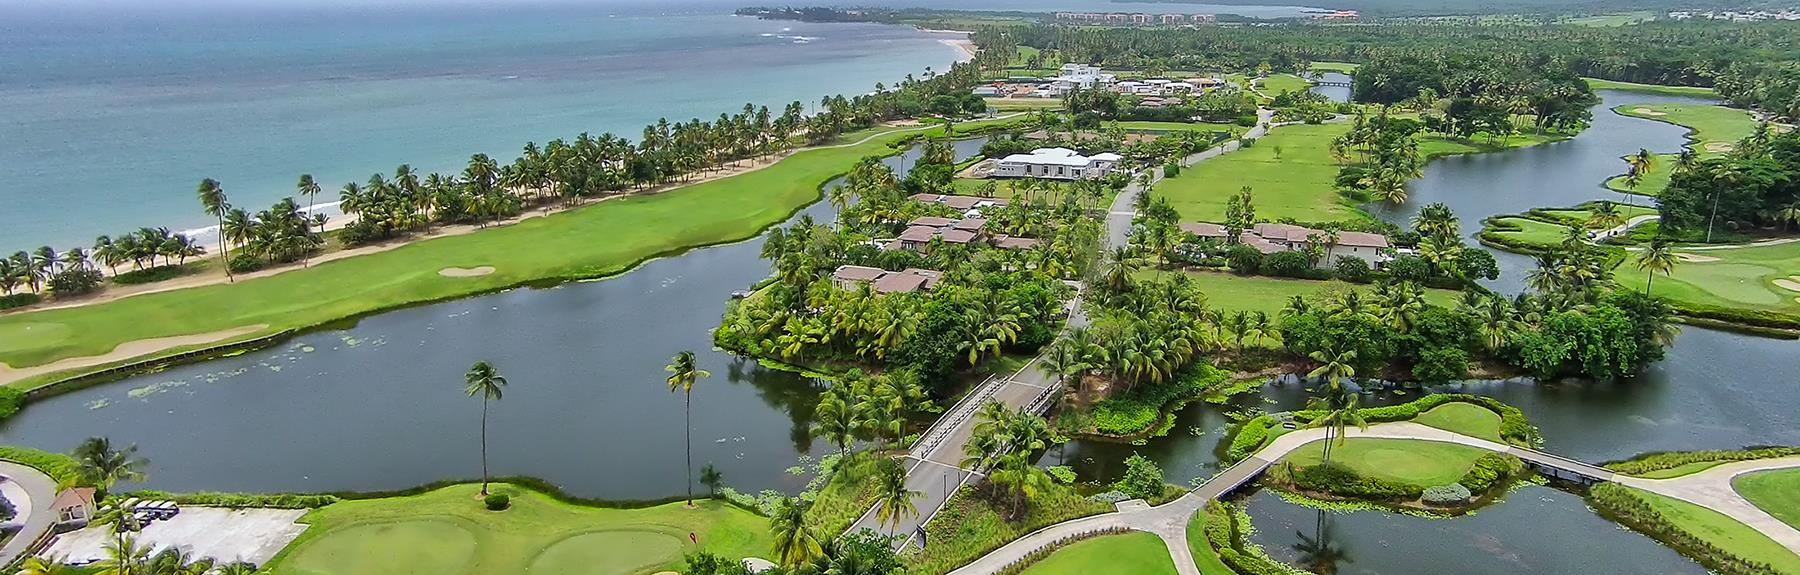 Golf Course Aerial - The St. Regis Bahia Beach Resort, Rio Grande, Puerto Rico